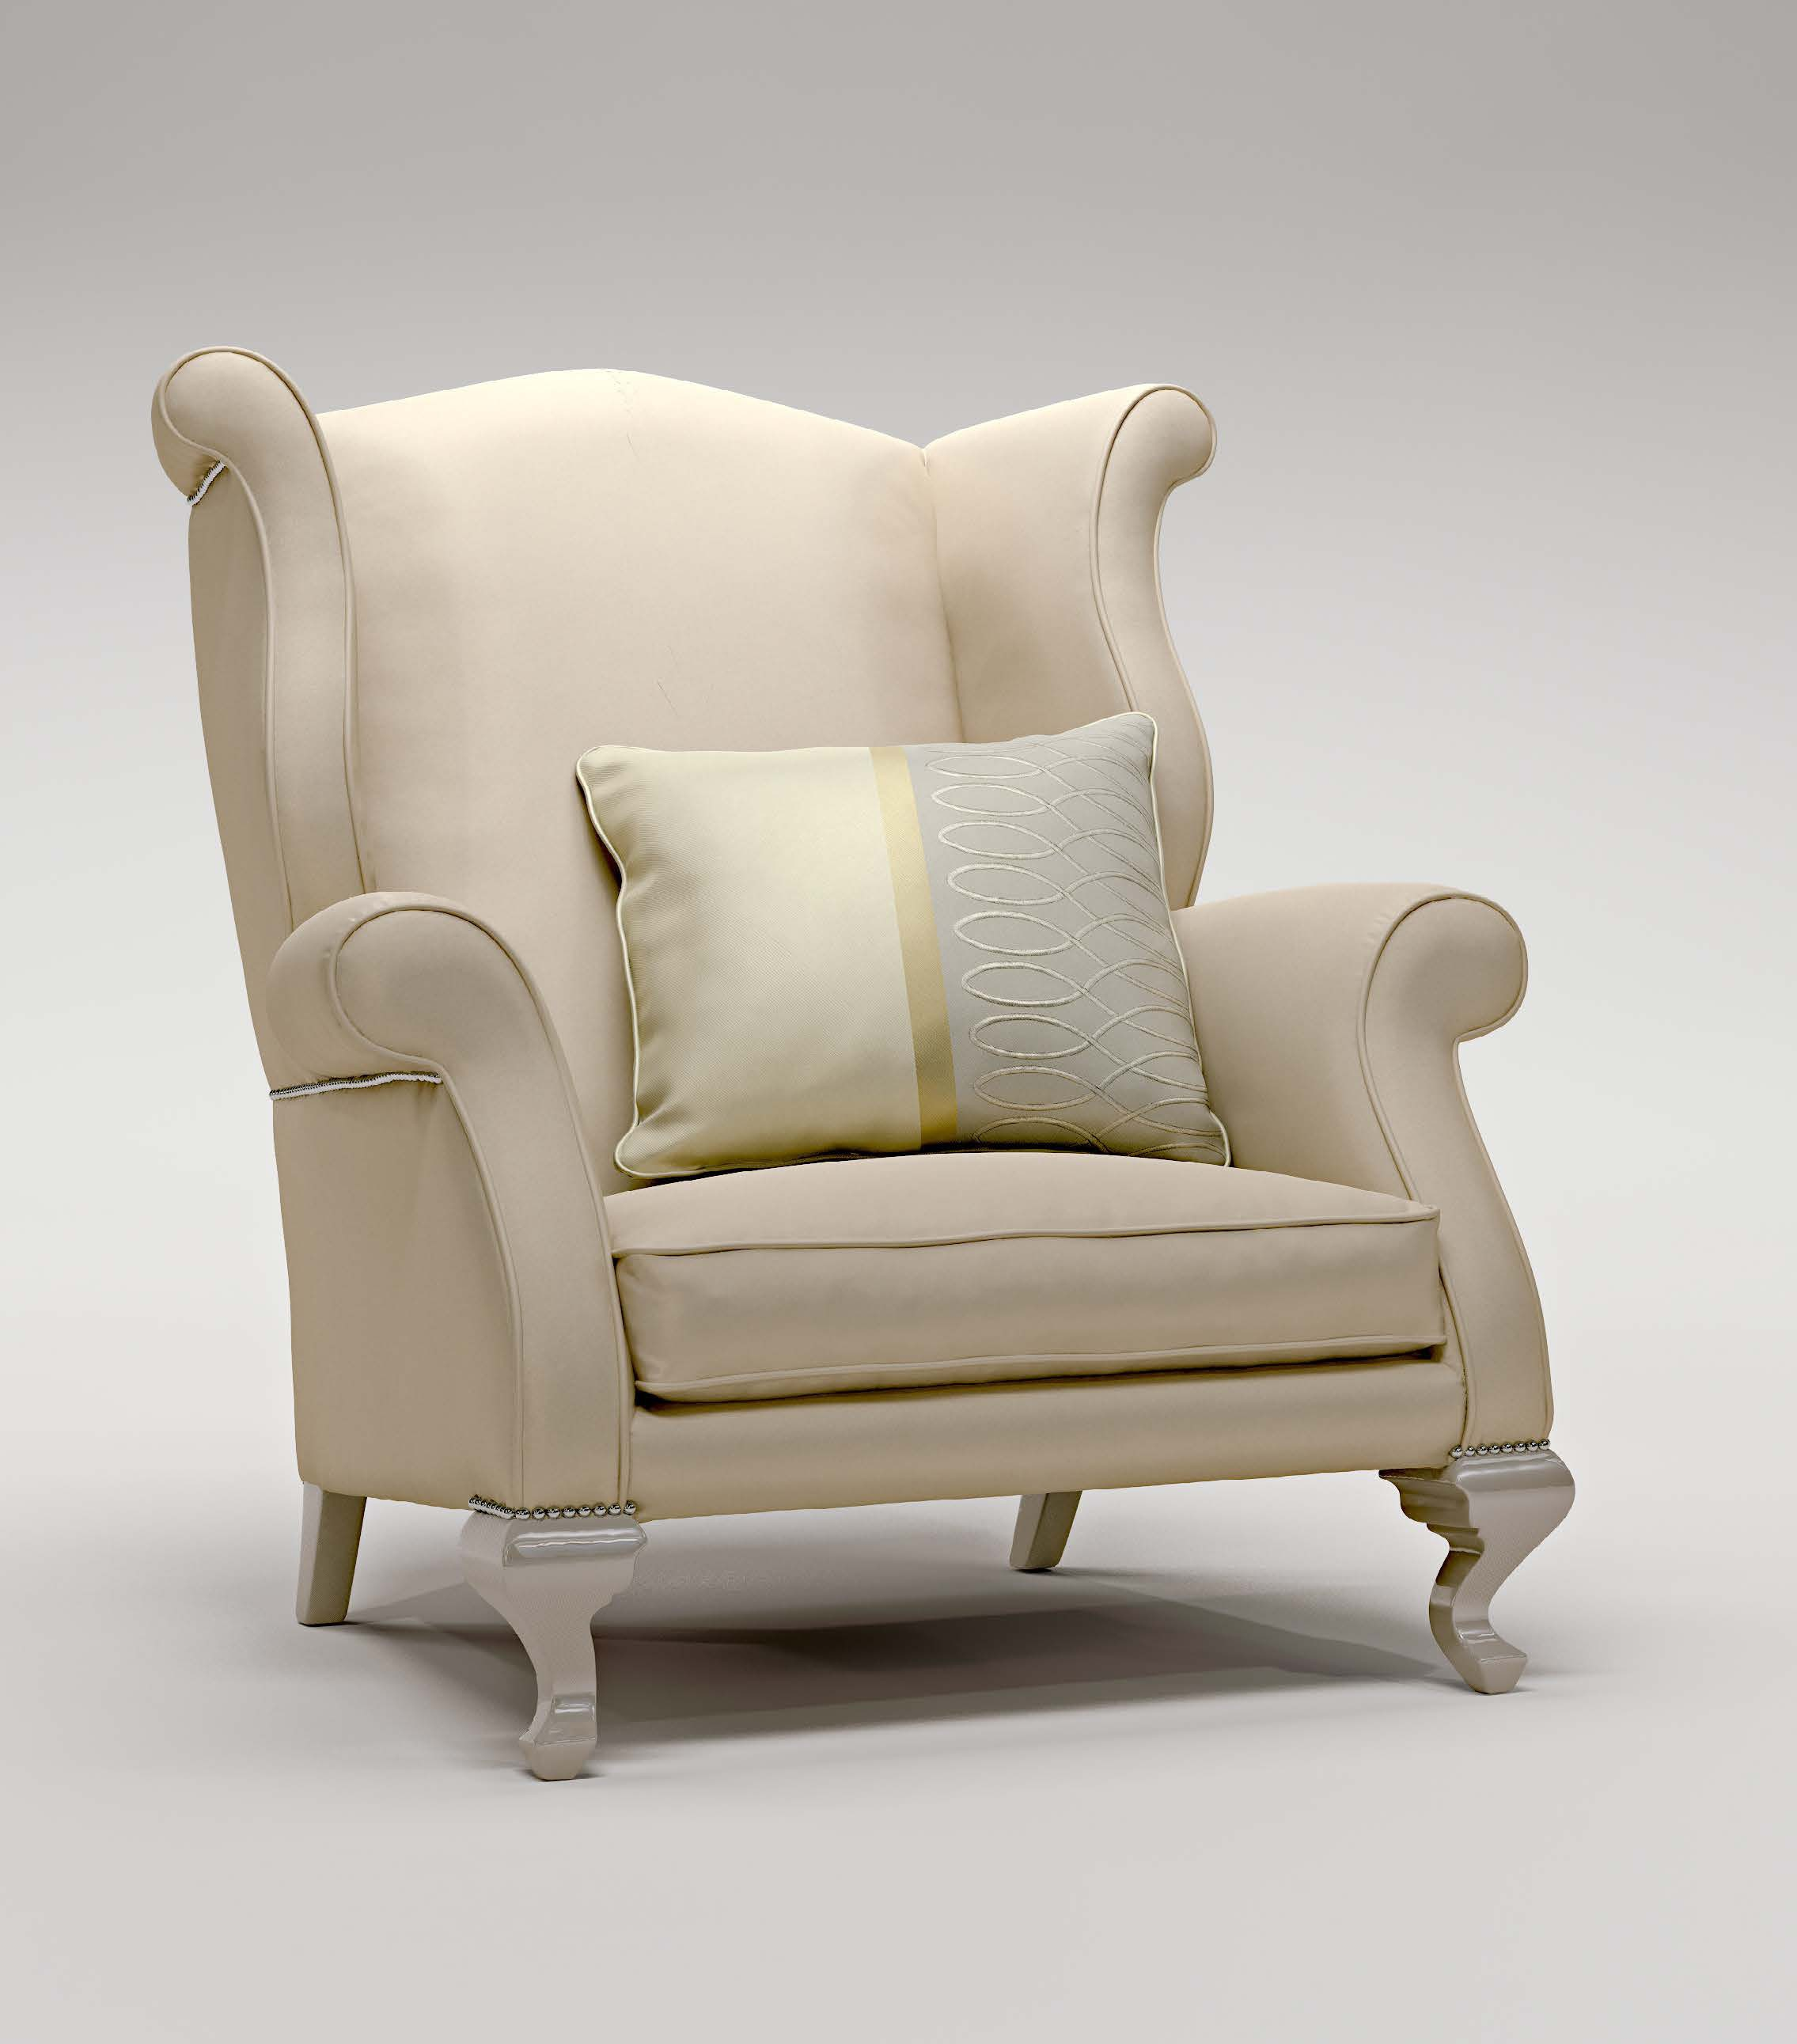 The Cecilia chair frame made of natural wood Bruno Zampa Luxury